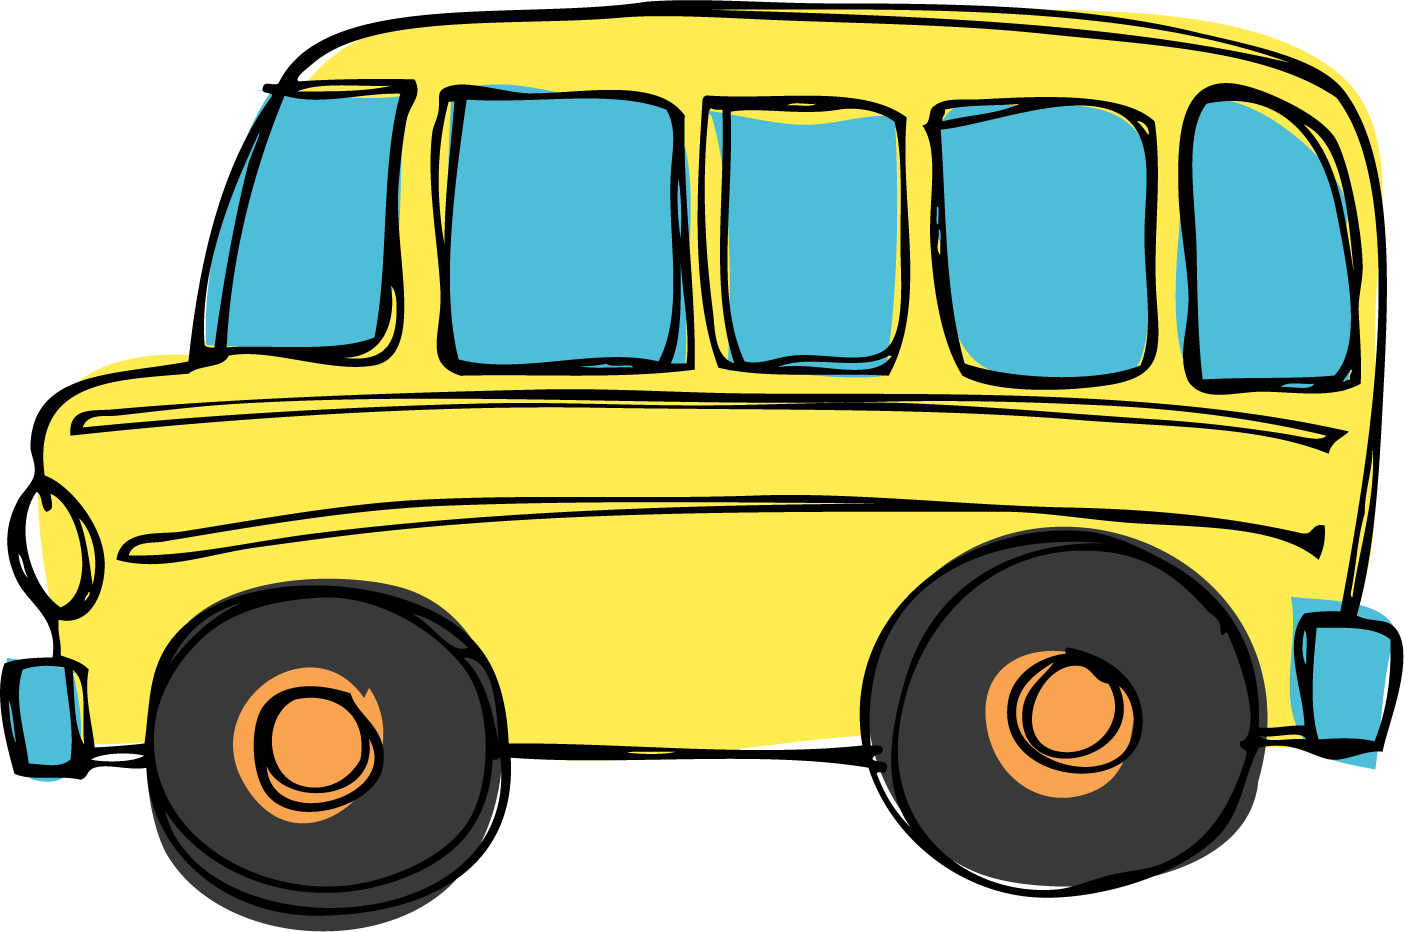 1404x932 Yellow Bus Clipart Free Images